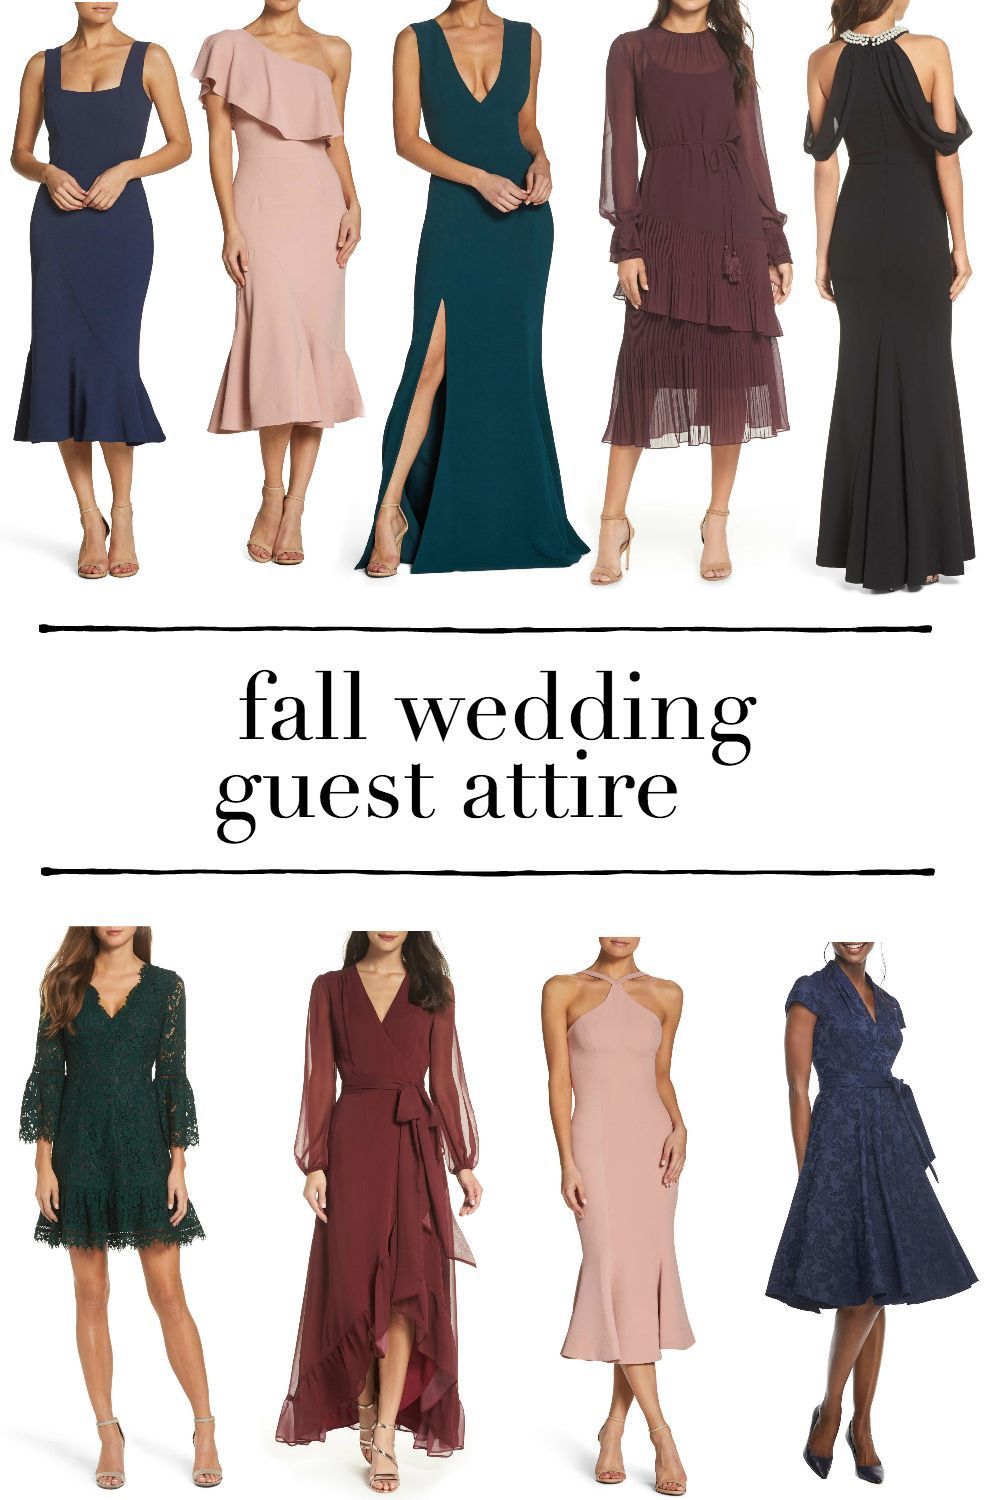 Casual Fall Wedding Guest Dresses In 2021 Fall Wedding Outfits Wedding Guest Outfit Fall Wedding Attire Guest [ 1500 x 1000 Pixel ]